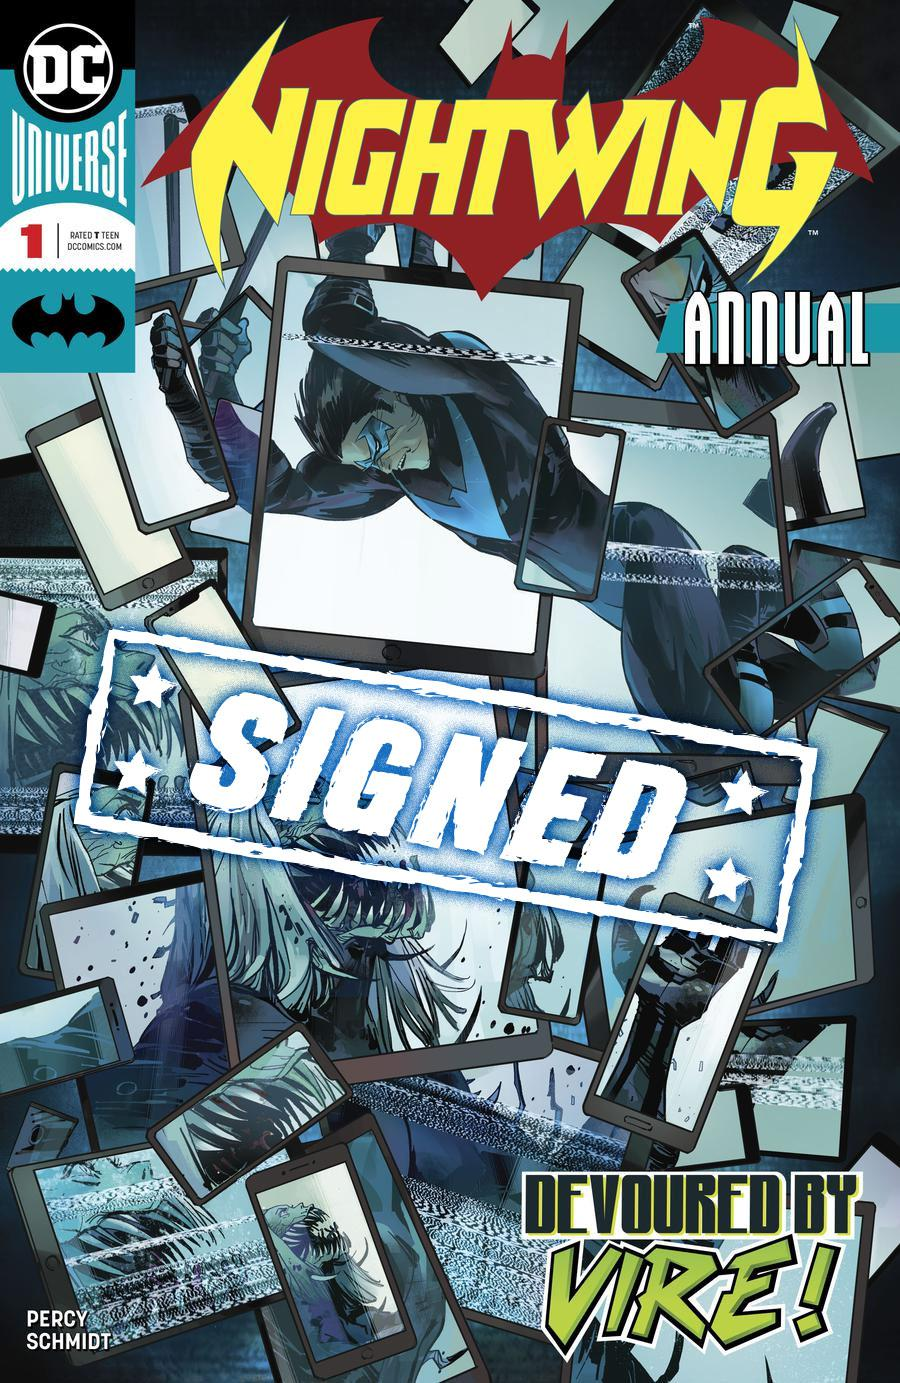 Nightwing Vol 4 Annual #1 Cover B Signed By Benjamin Percy